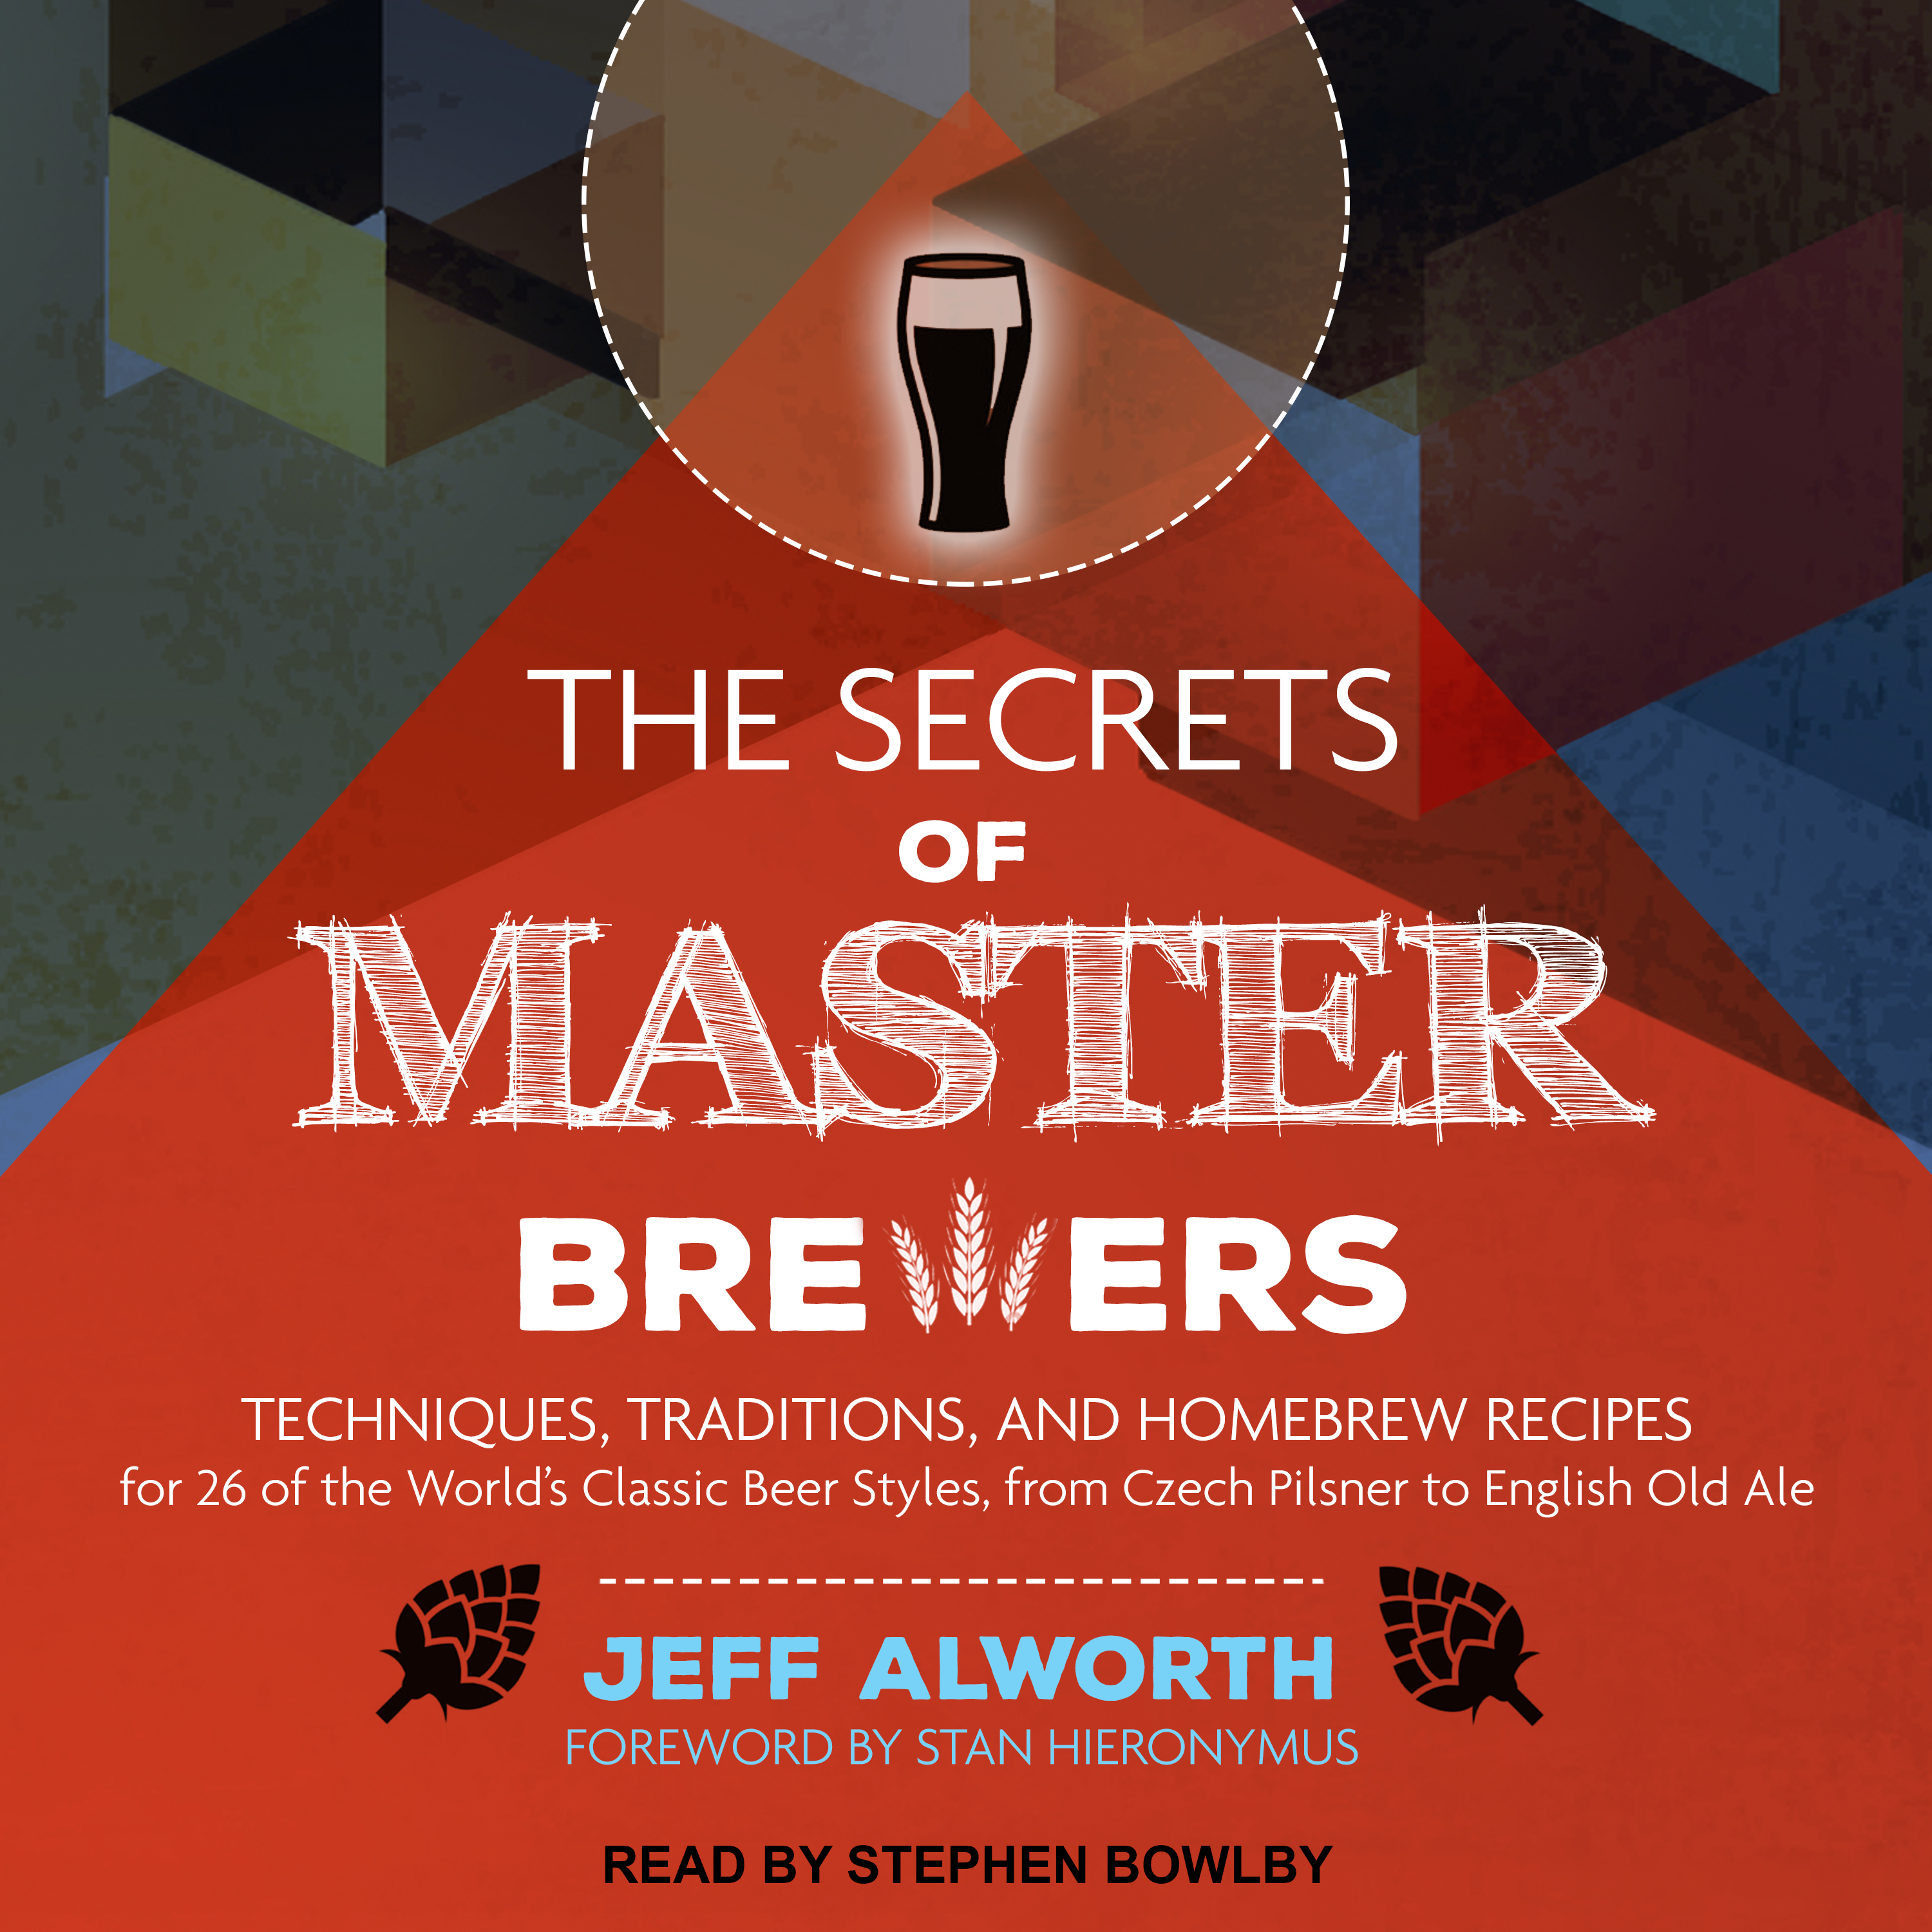 Printable The Secrets of Master Brewers: Techniques, Traditions, and Homebrew Recipes for 26 of the World's Classic Beer Styles, from Czech Pilsner to English Old Ale Audiobook Cover Art